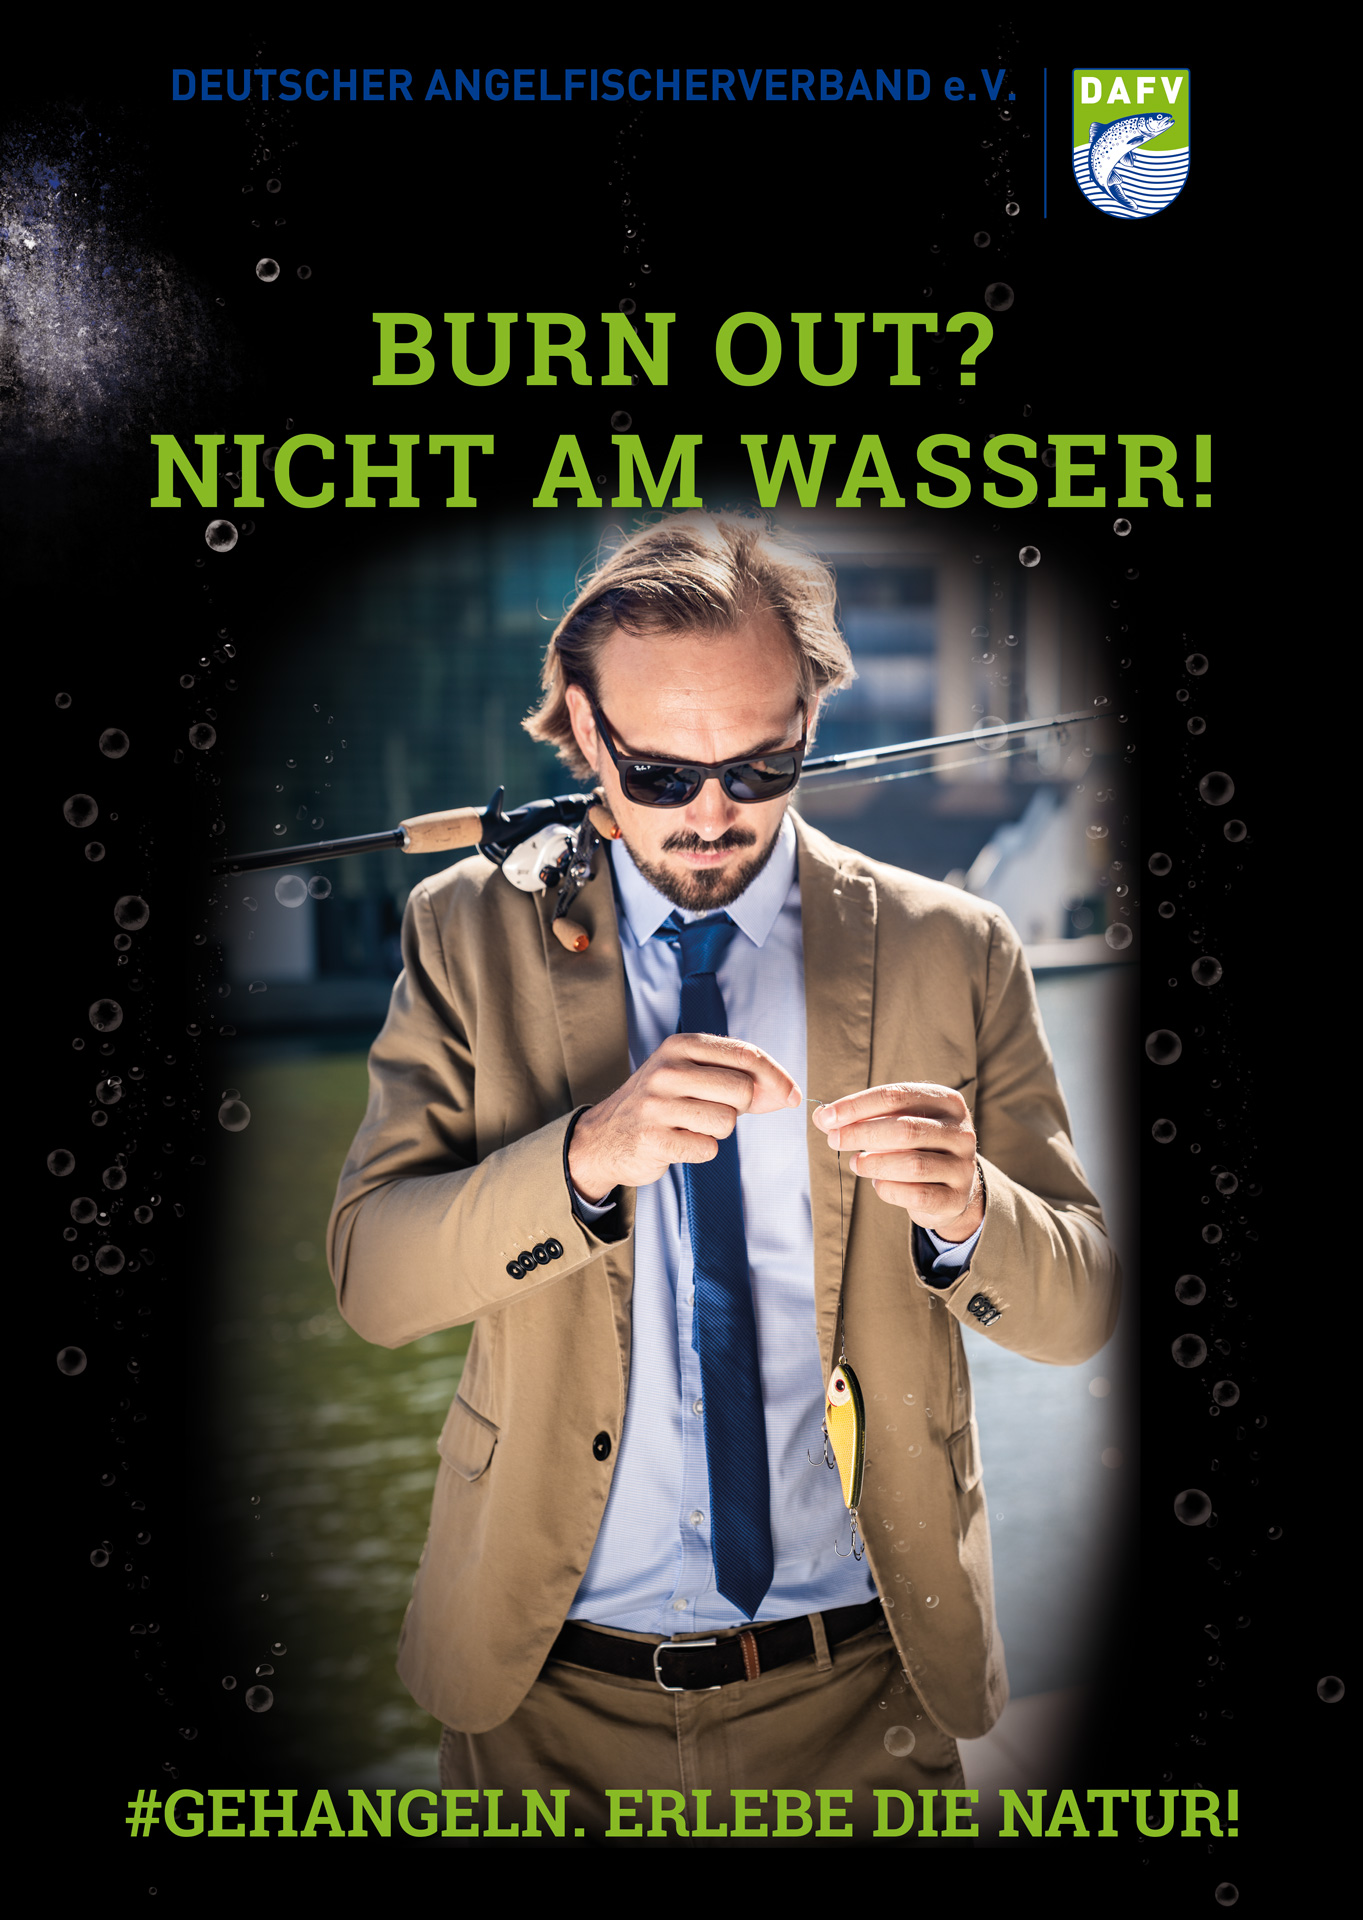 DAFV Kampagne burn out